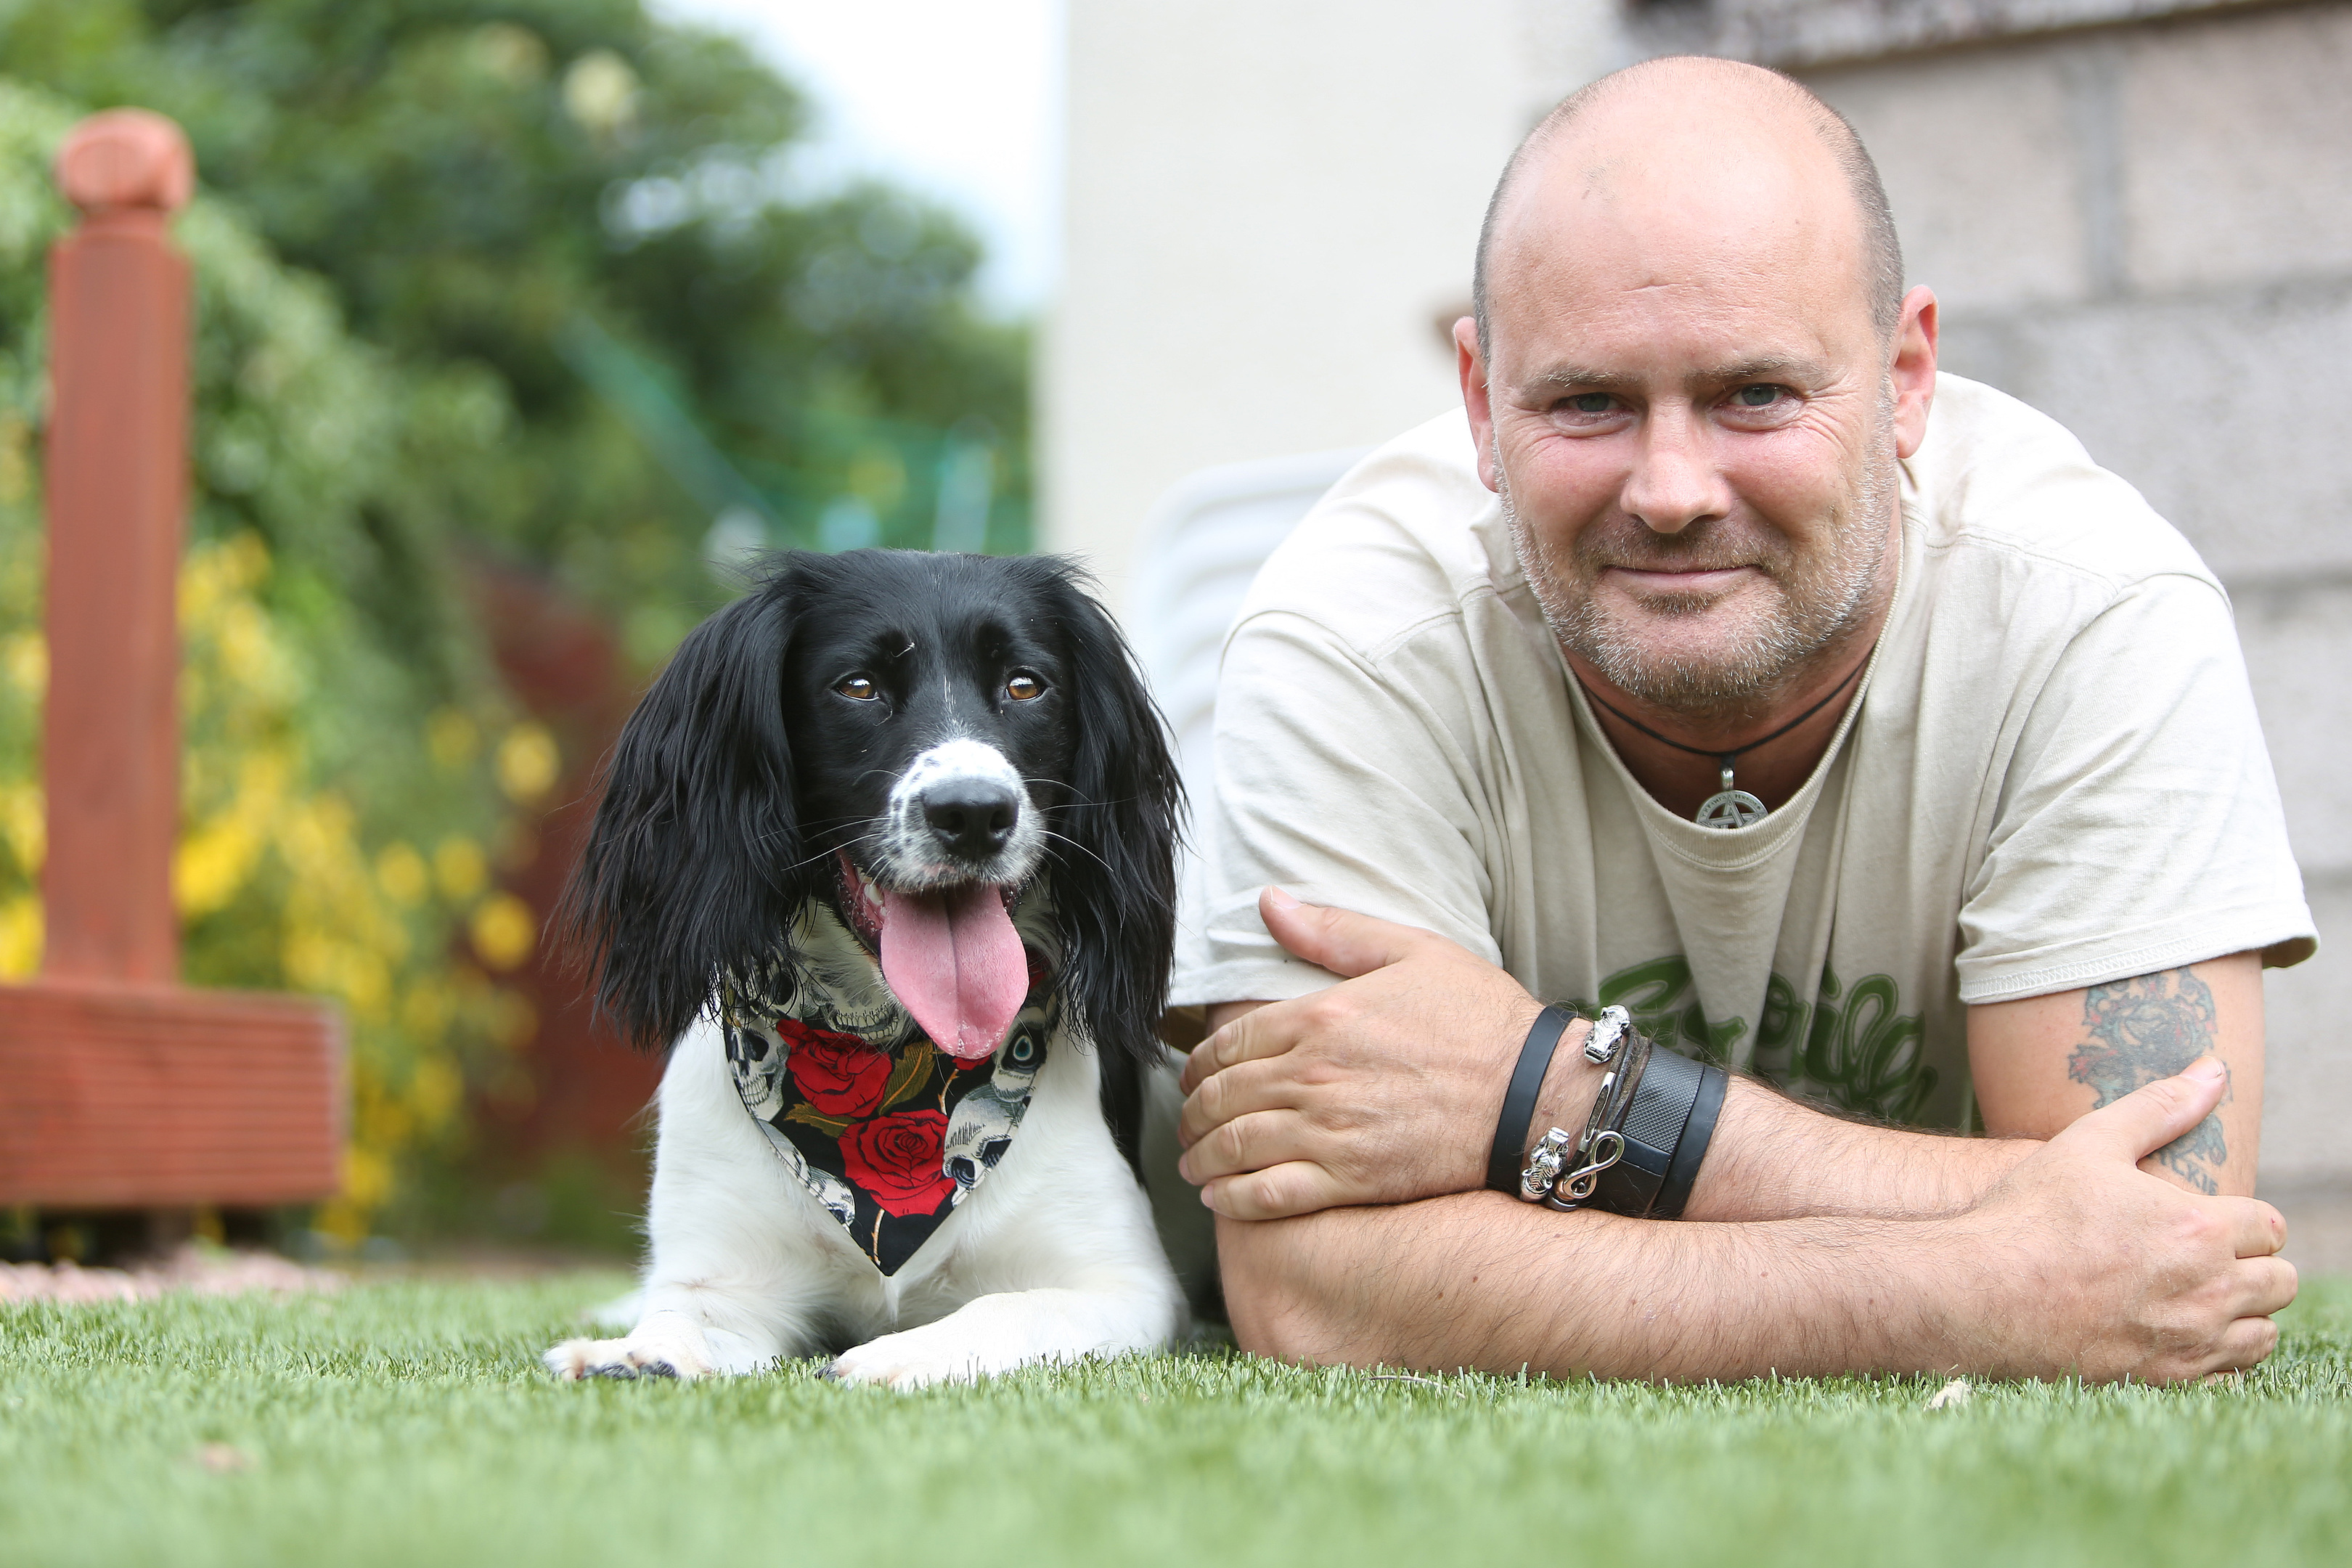 Paul Wilkie with his service dog Irma